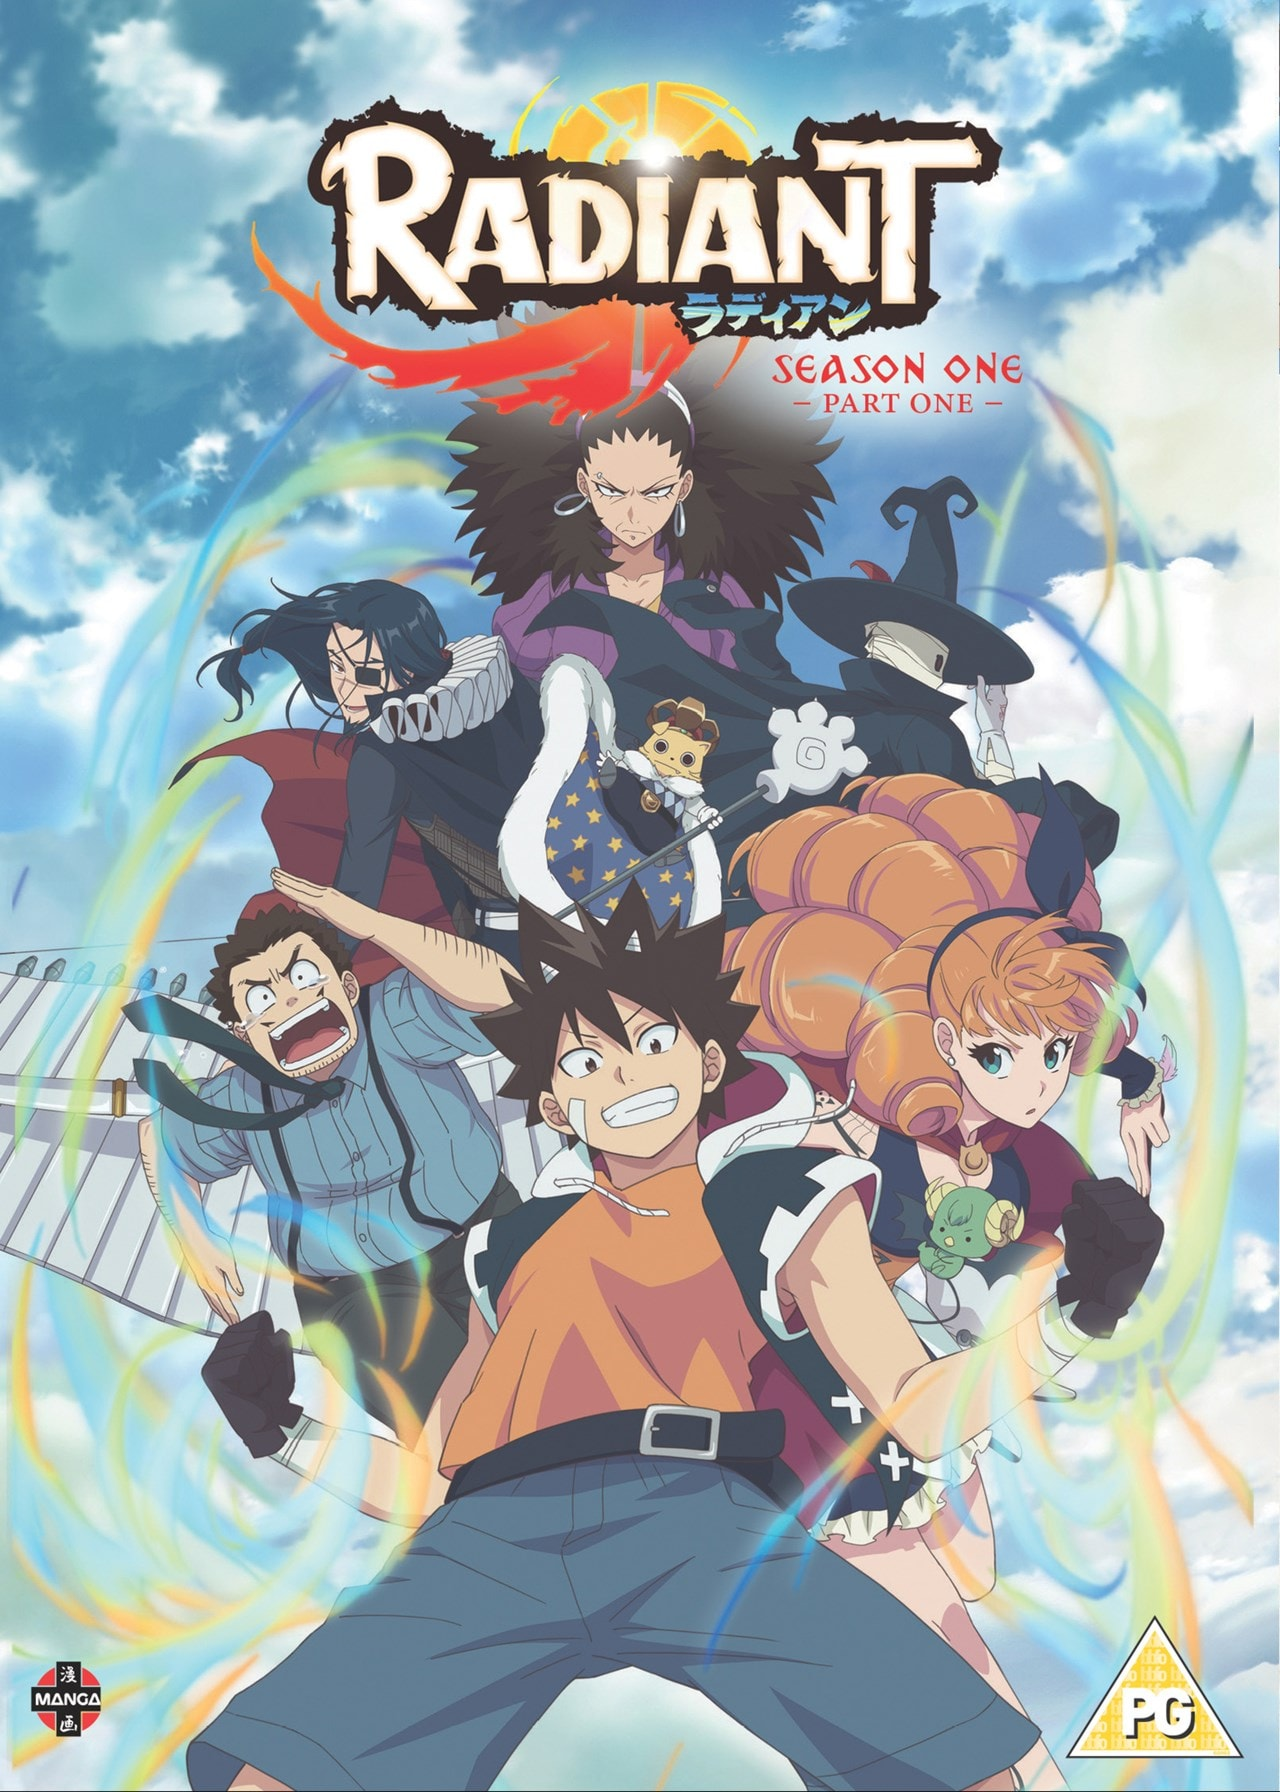 Radiant: Season One - Part One - 1